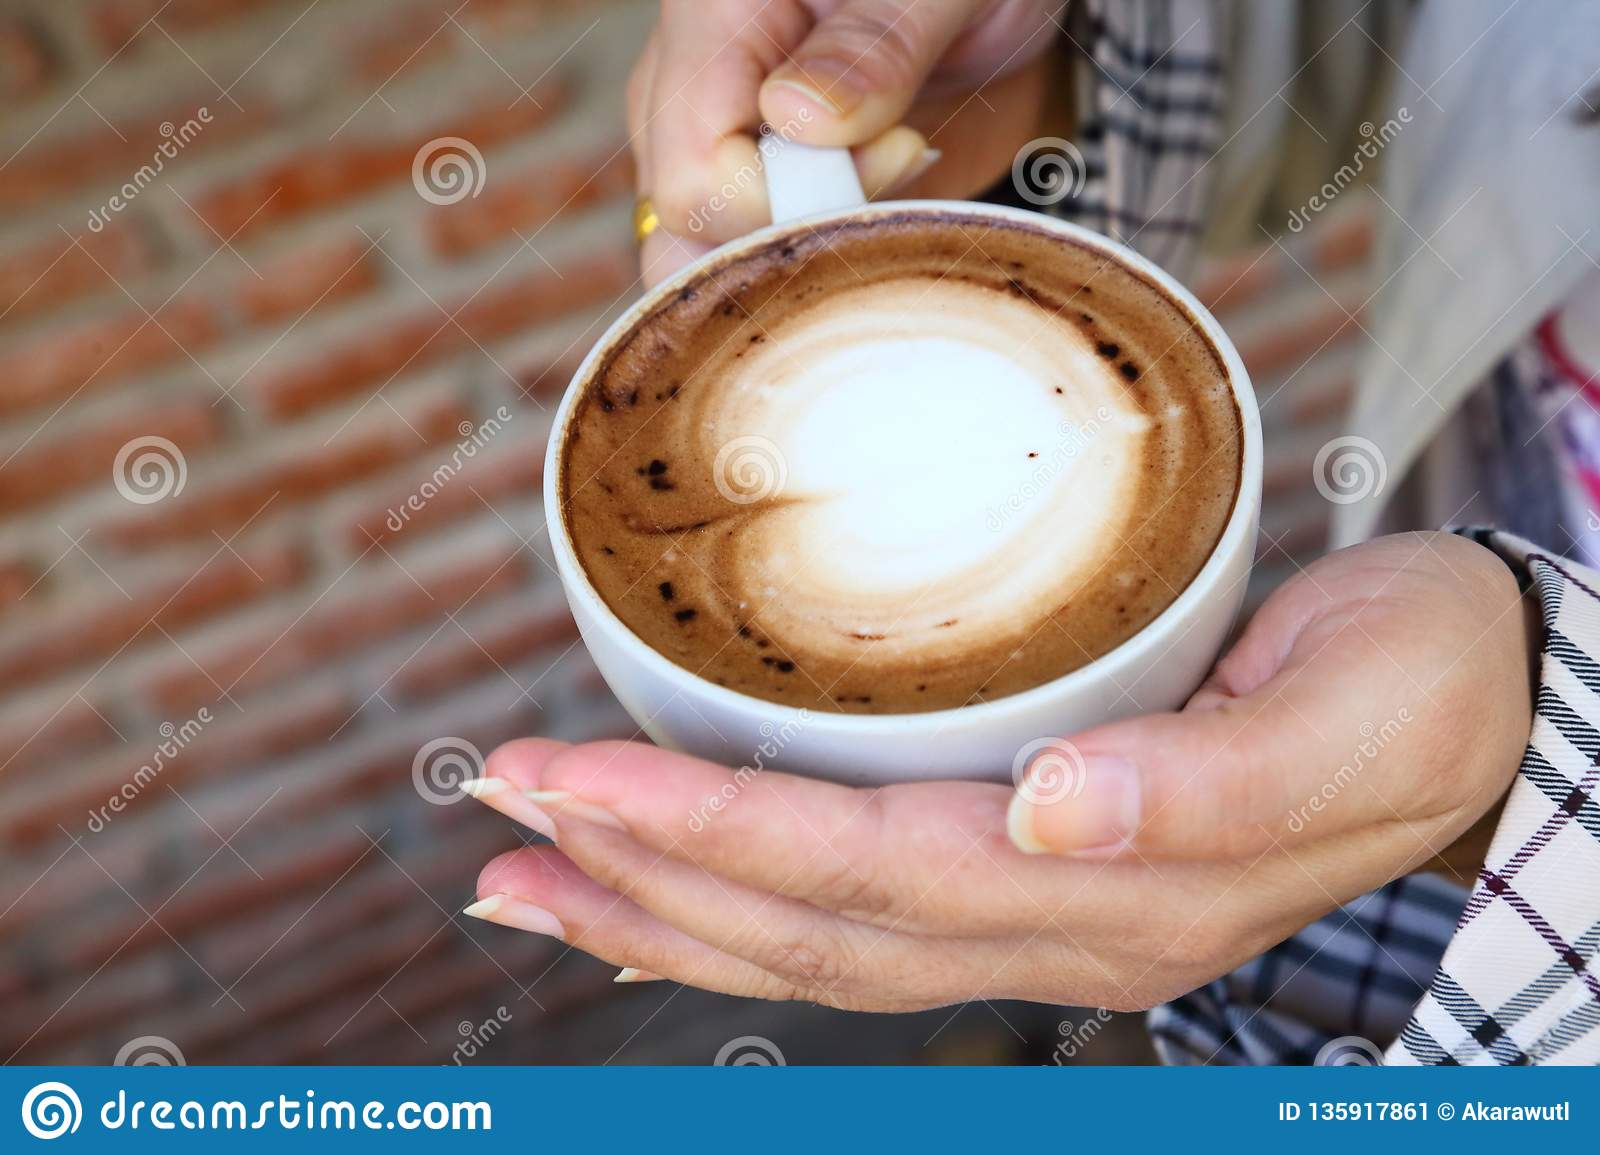 Woman holding cup of hot mocha coffee in her hand in the cafe during winter season